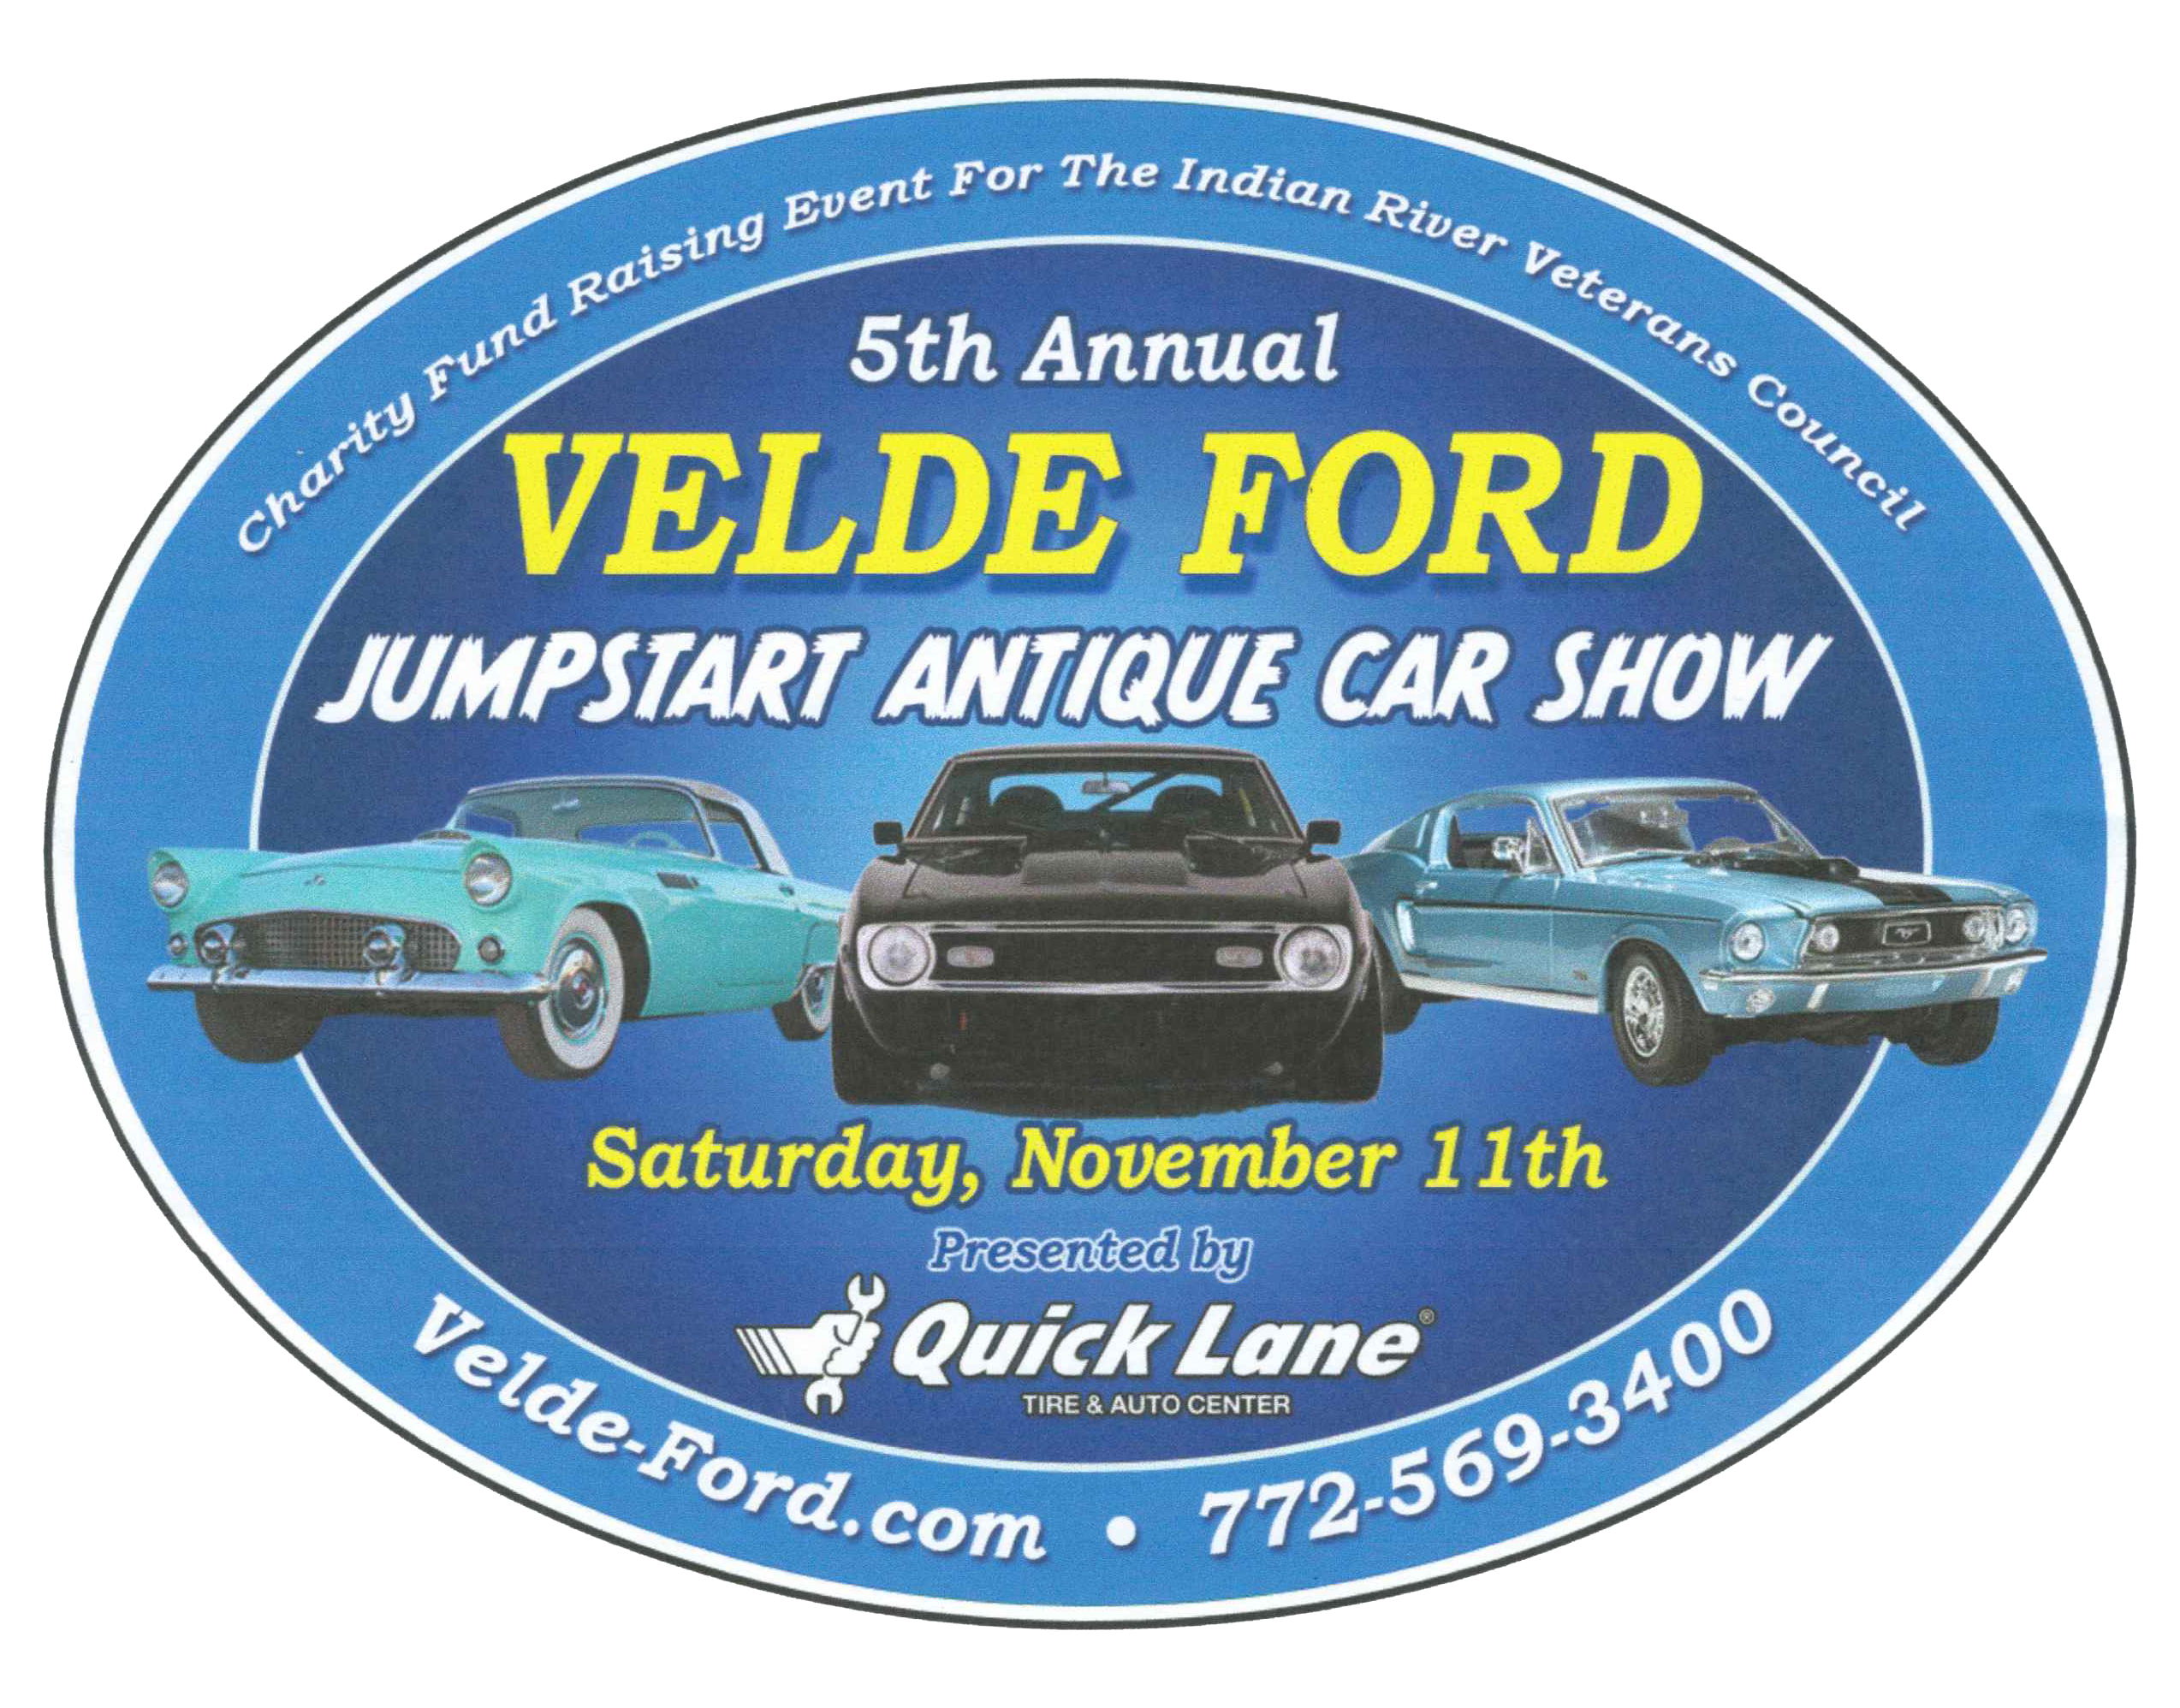 You are invited to the 5th Annual Ford Jump Start Antique Car Show!  sc 1 st  Velde Ford Inc & Velde Ford Inc | New Ford dealership in Vero Beach FL 32962 markmcfarlin.com